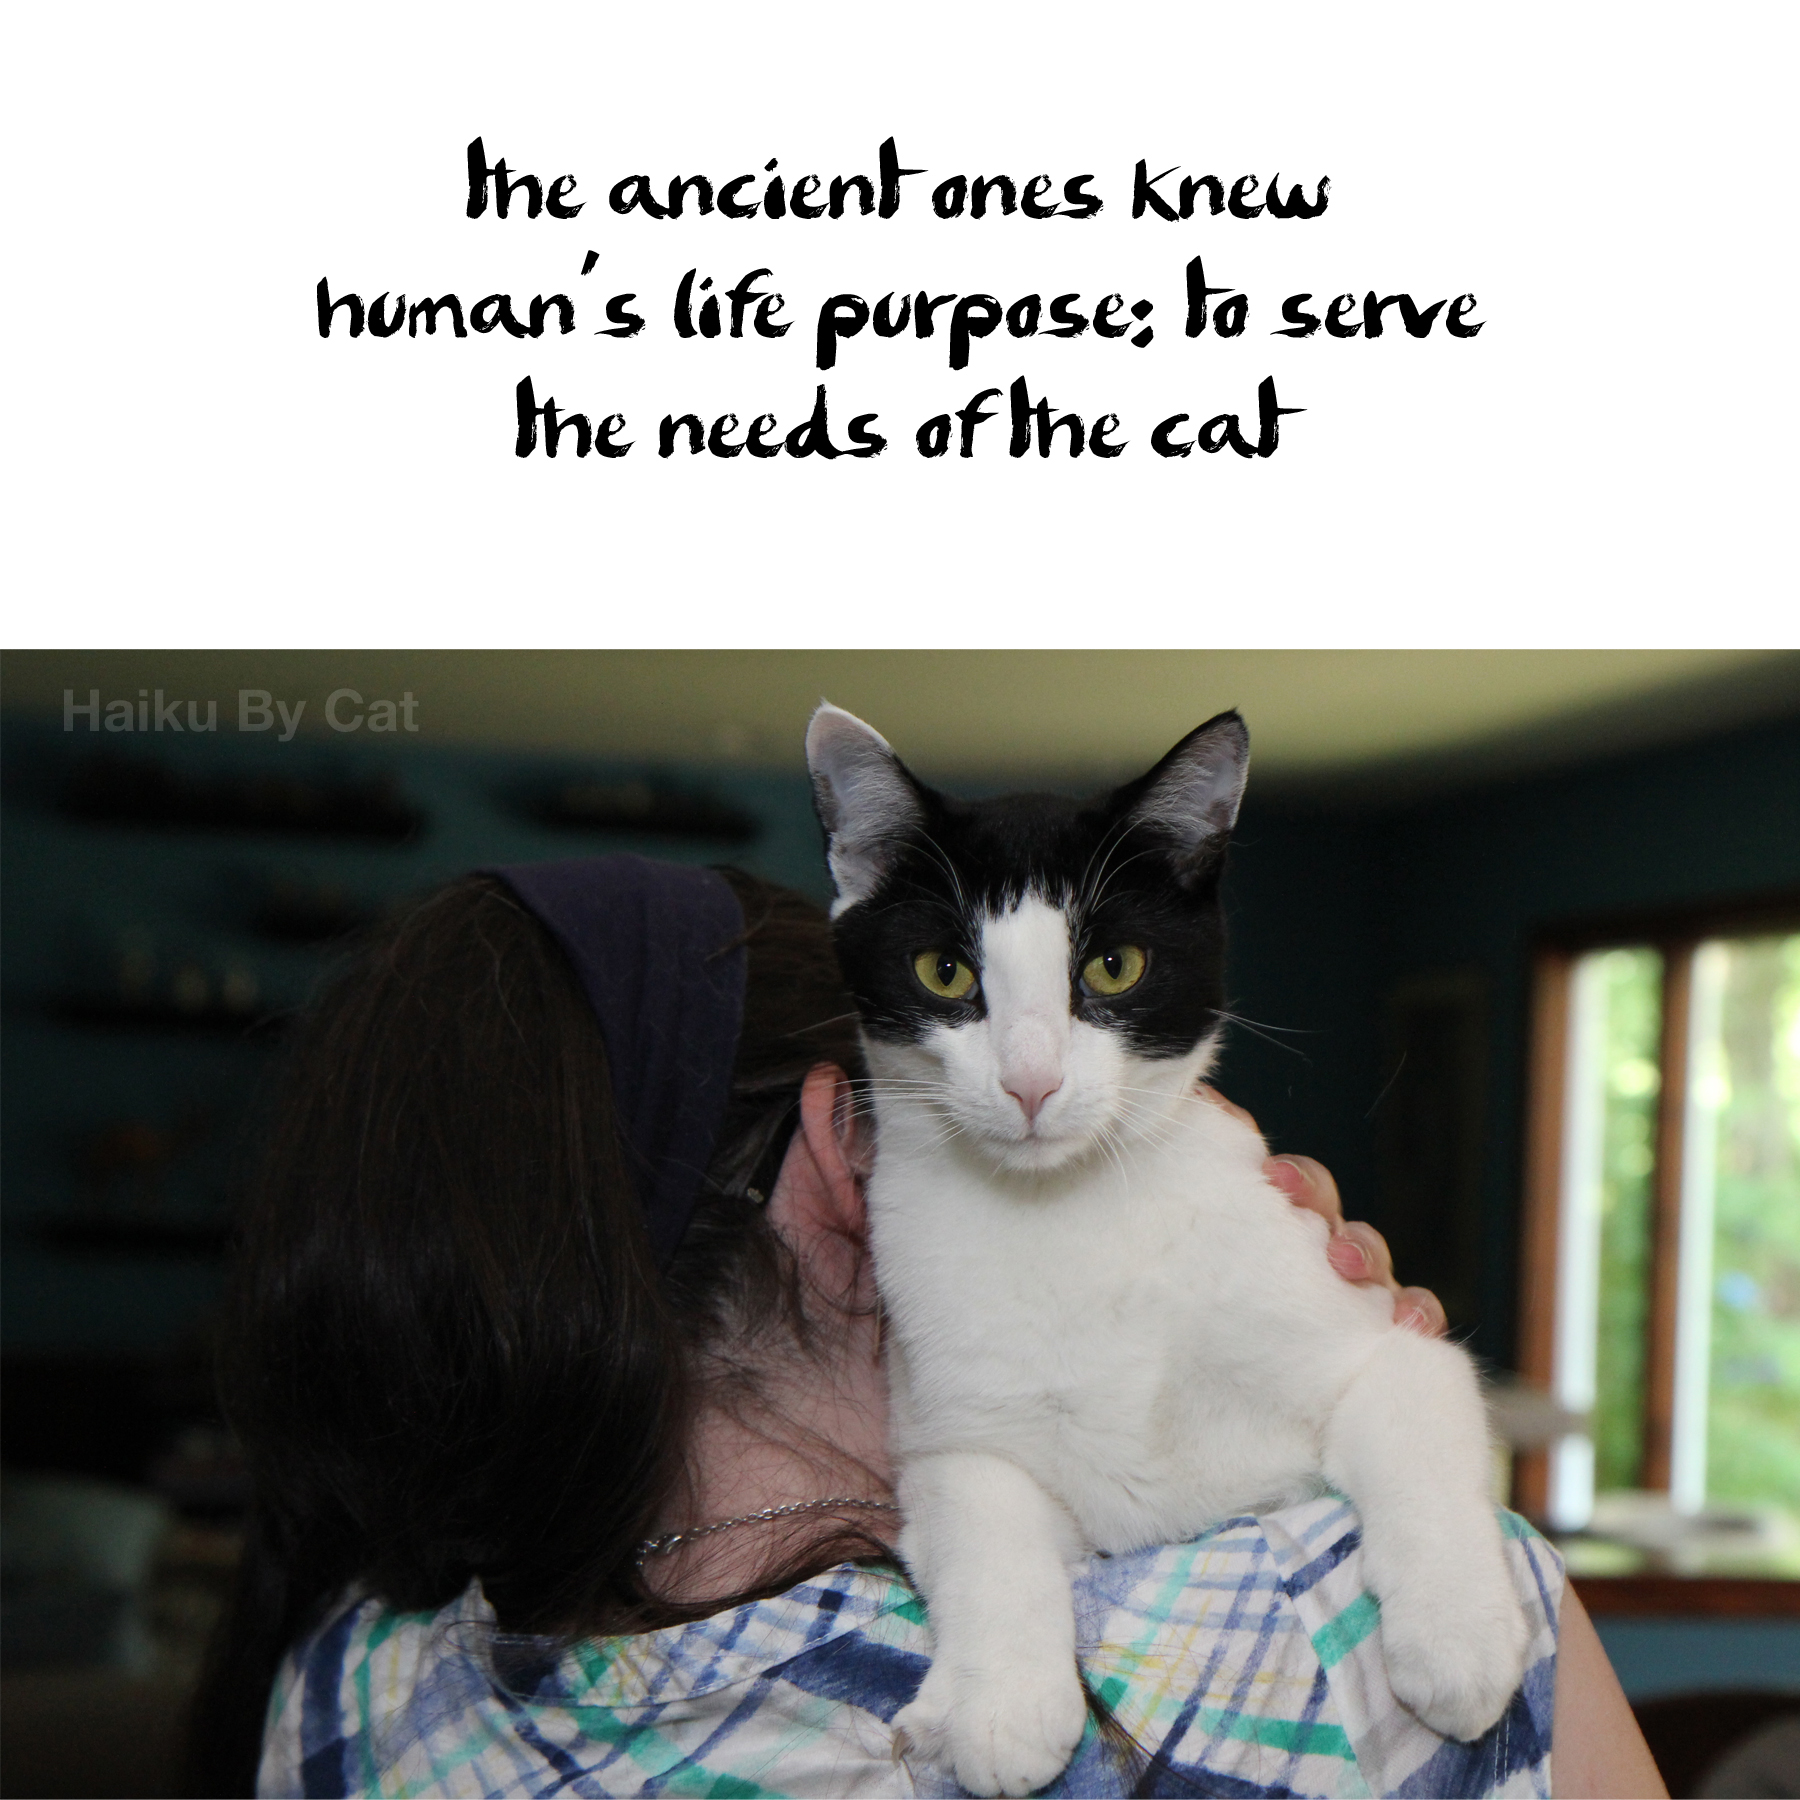 Haiku by cat: Haiku by cat: the ancient ones knew / human's life purpose: to serve / the needs of the cat